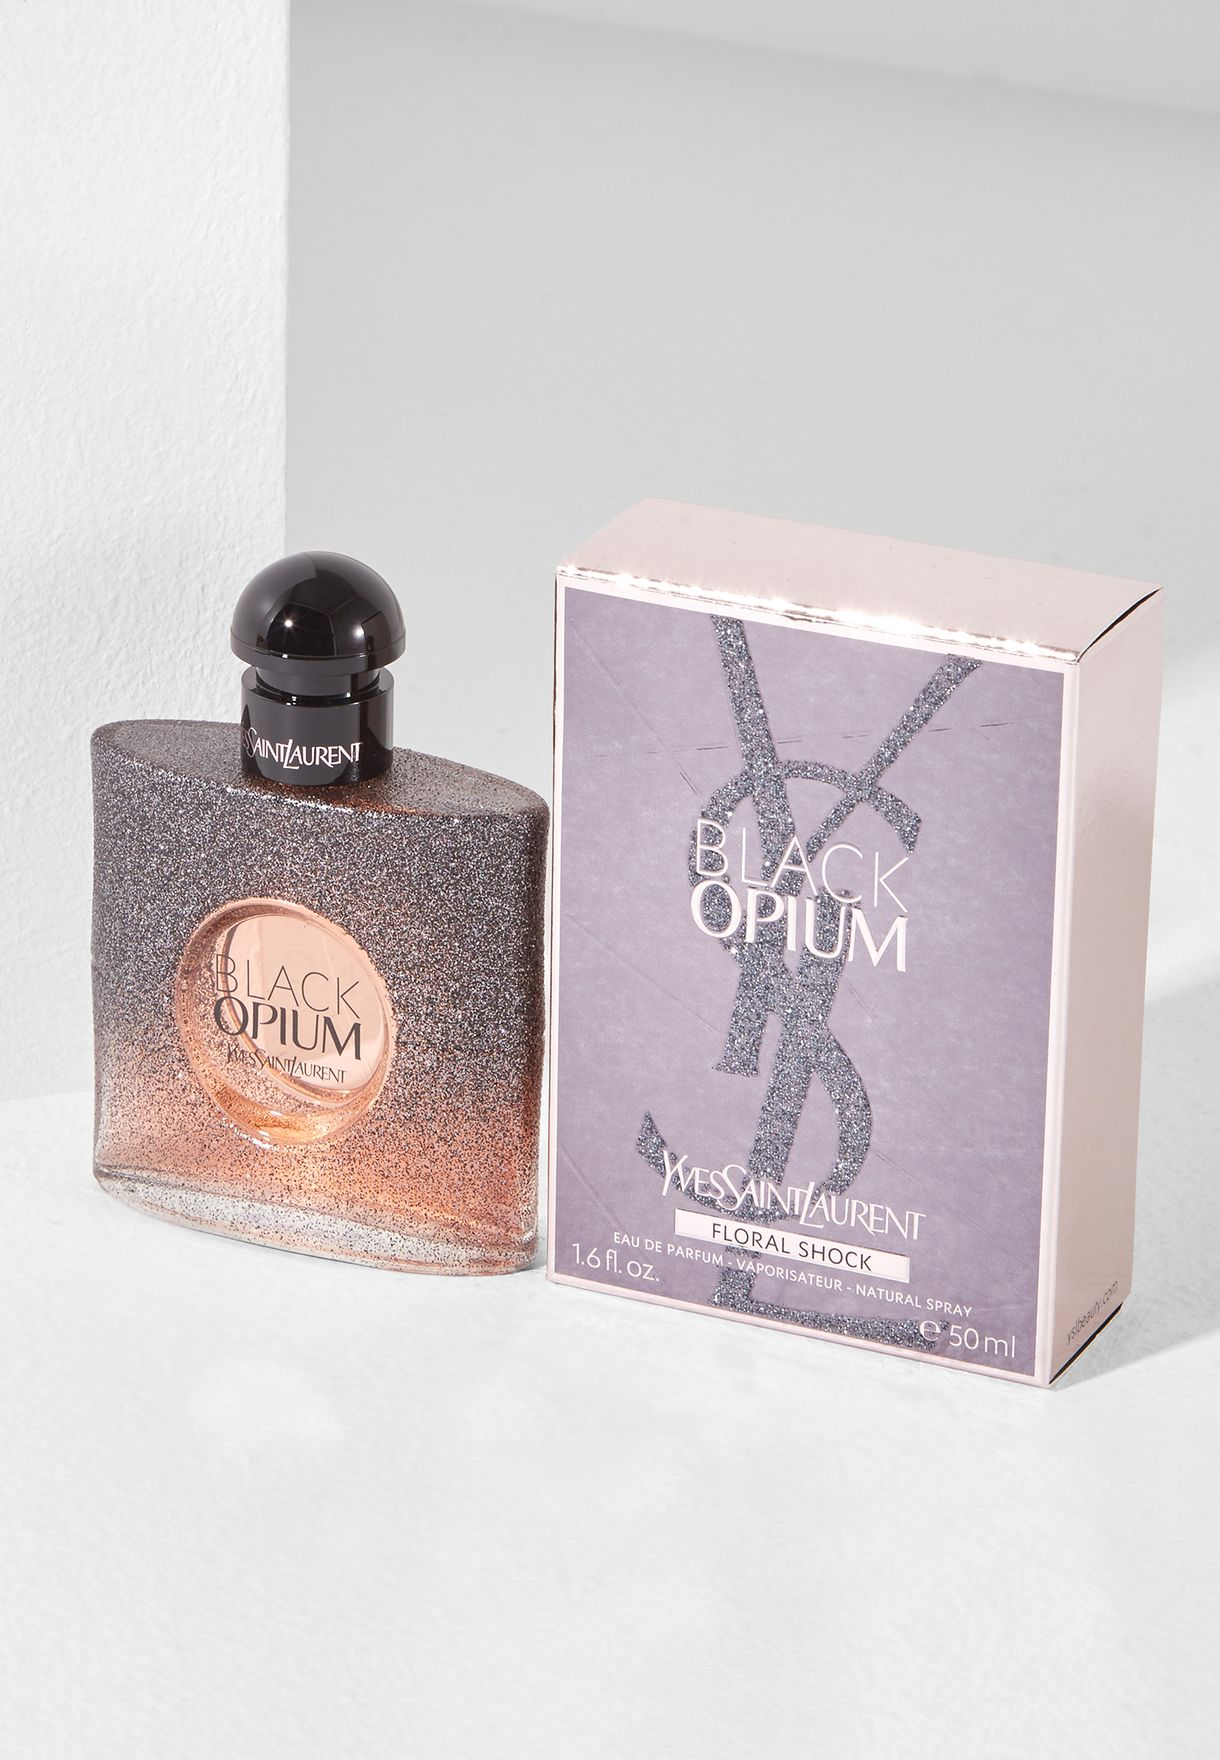 Shop Ysl Clear Black Opium Floral Shock 50ml Edp 3614271566553 For